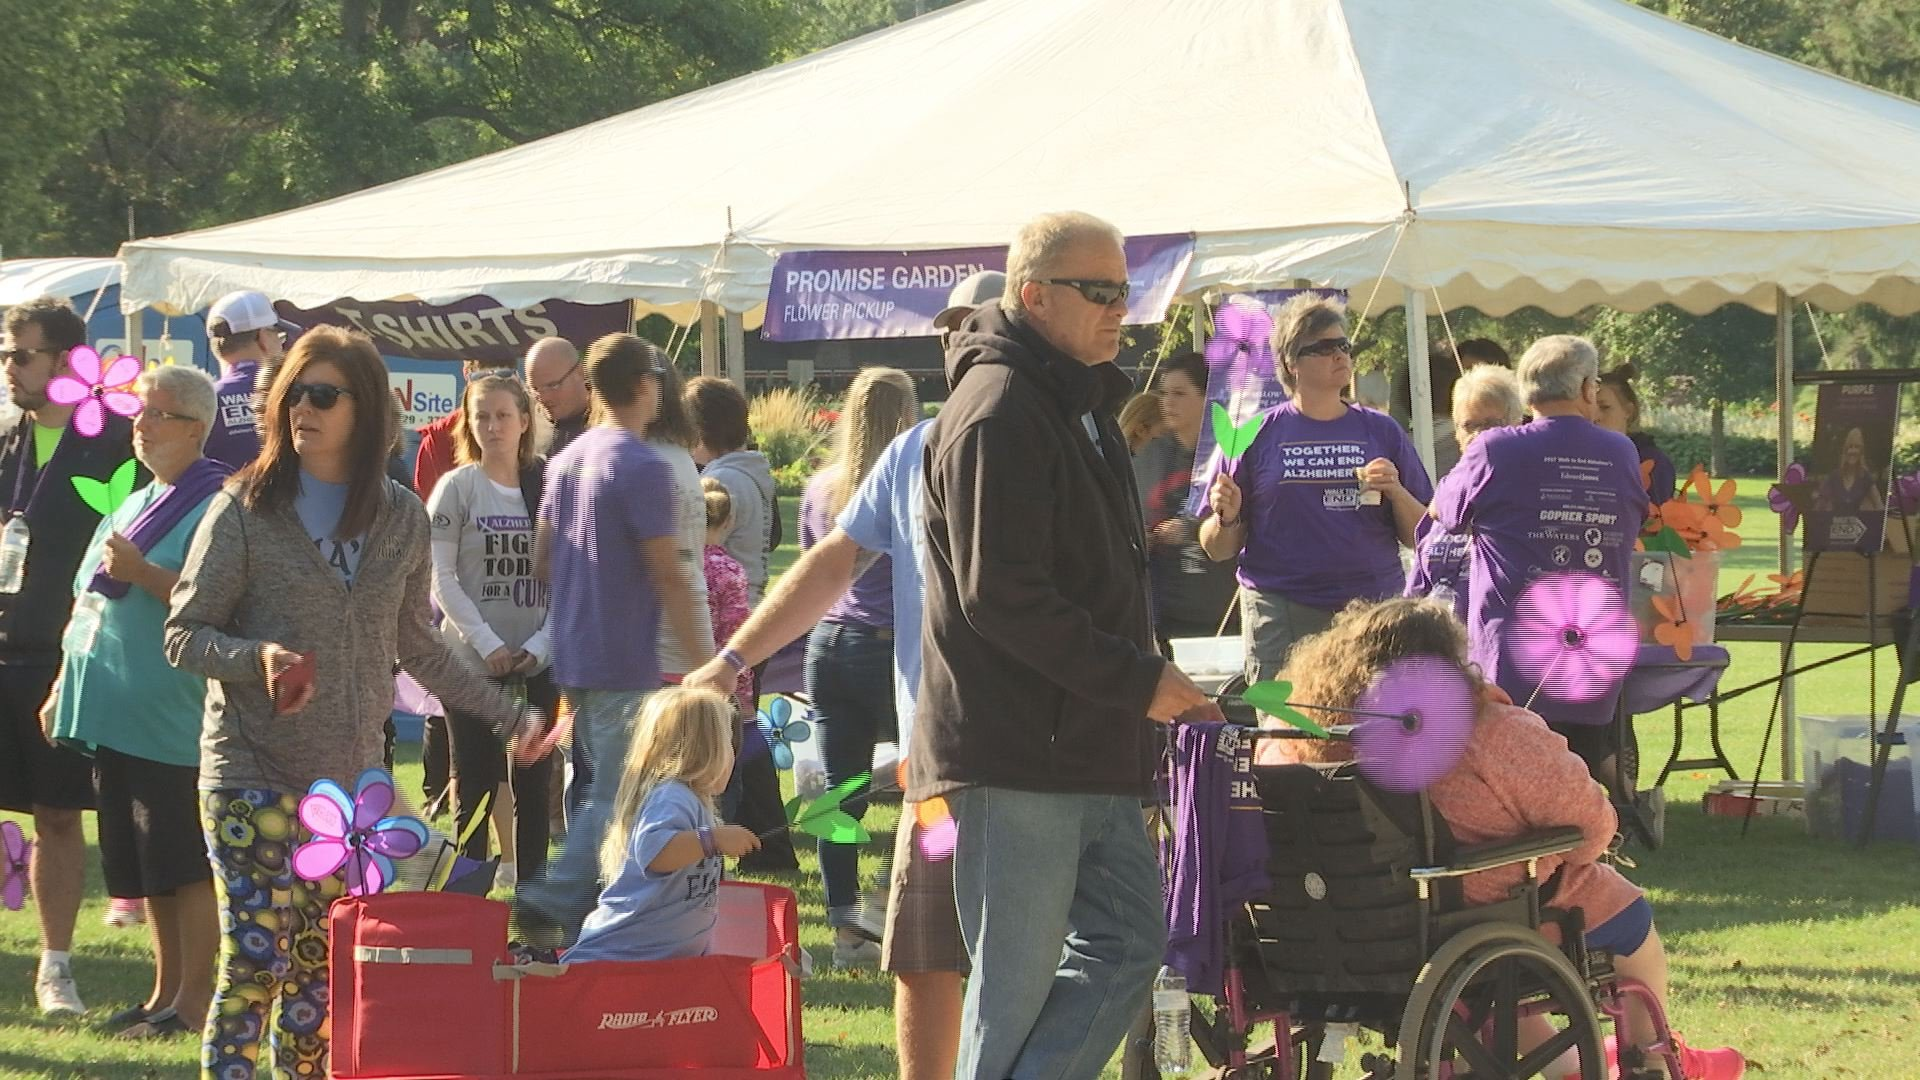 Walk to End Alzheimer's held at Waterfront Park